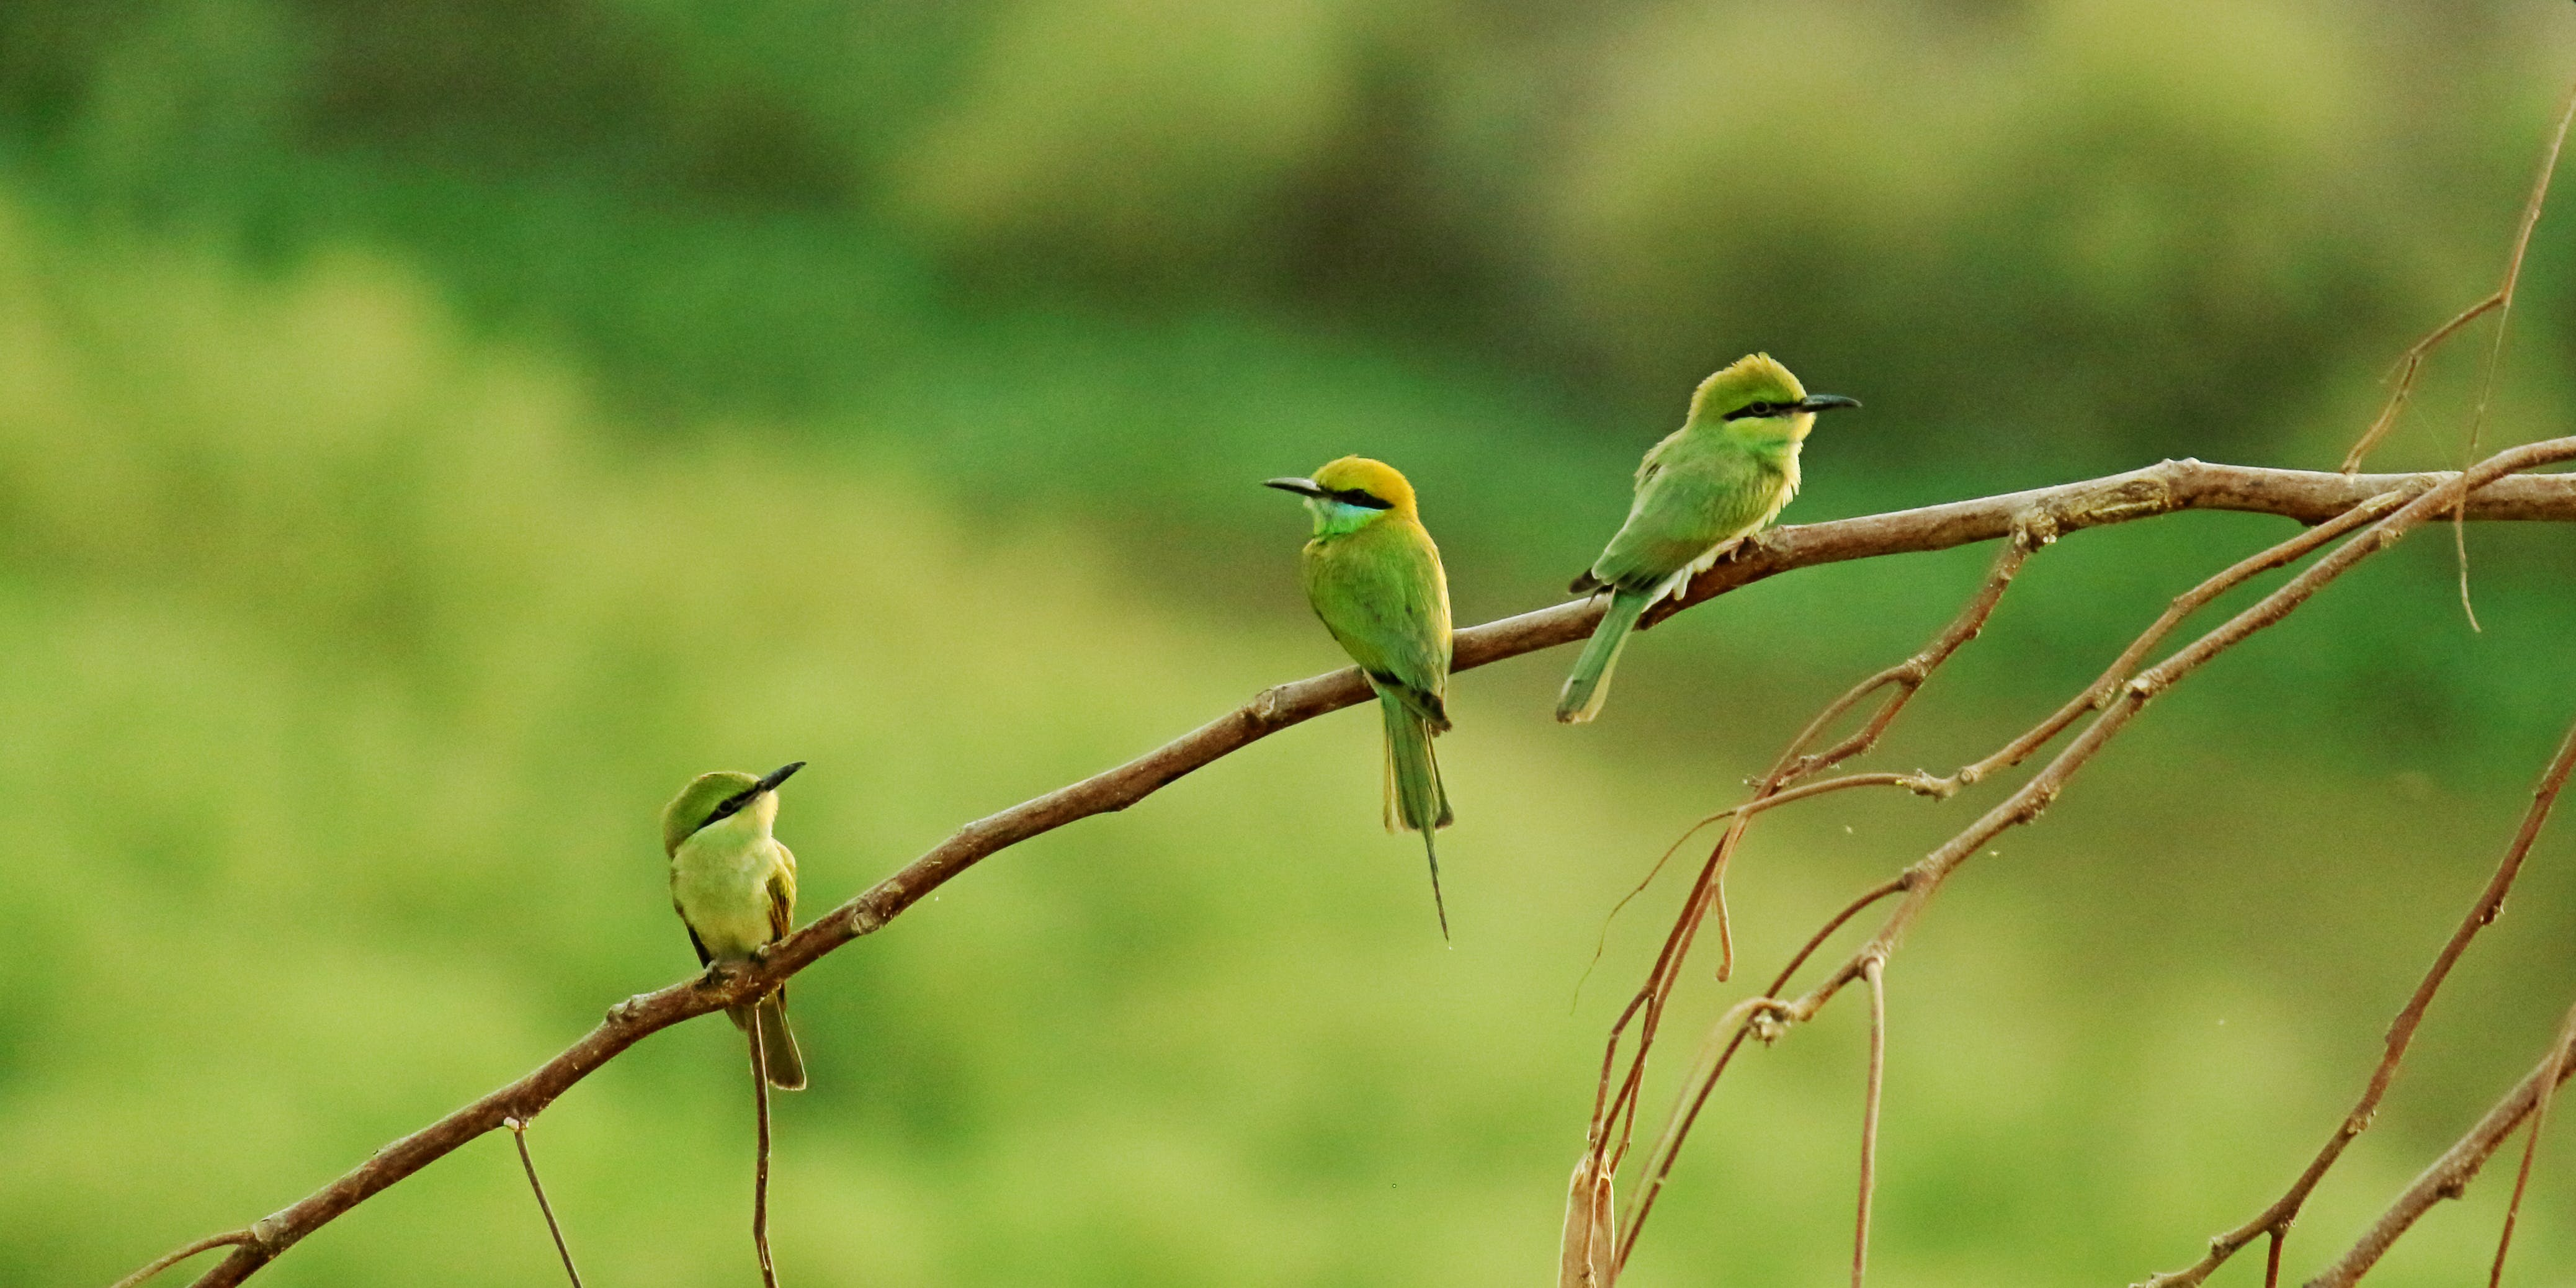 Three Long-beaked Small Birds Perched on Brown Tree Branch